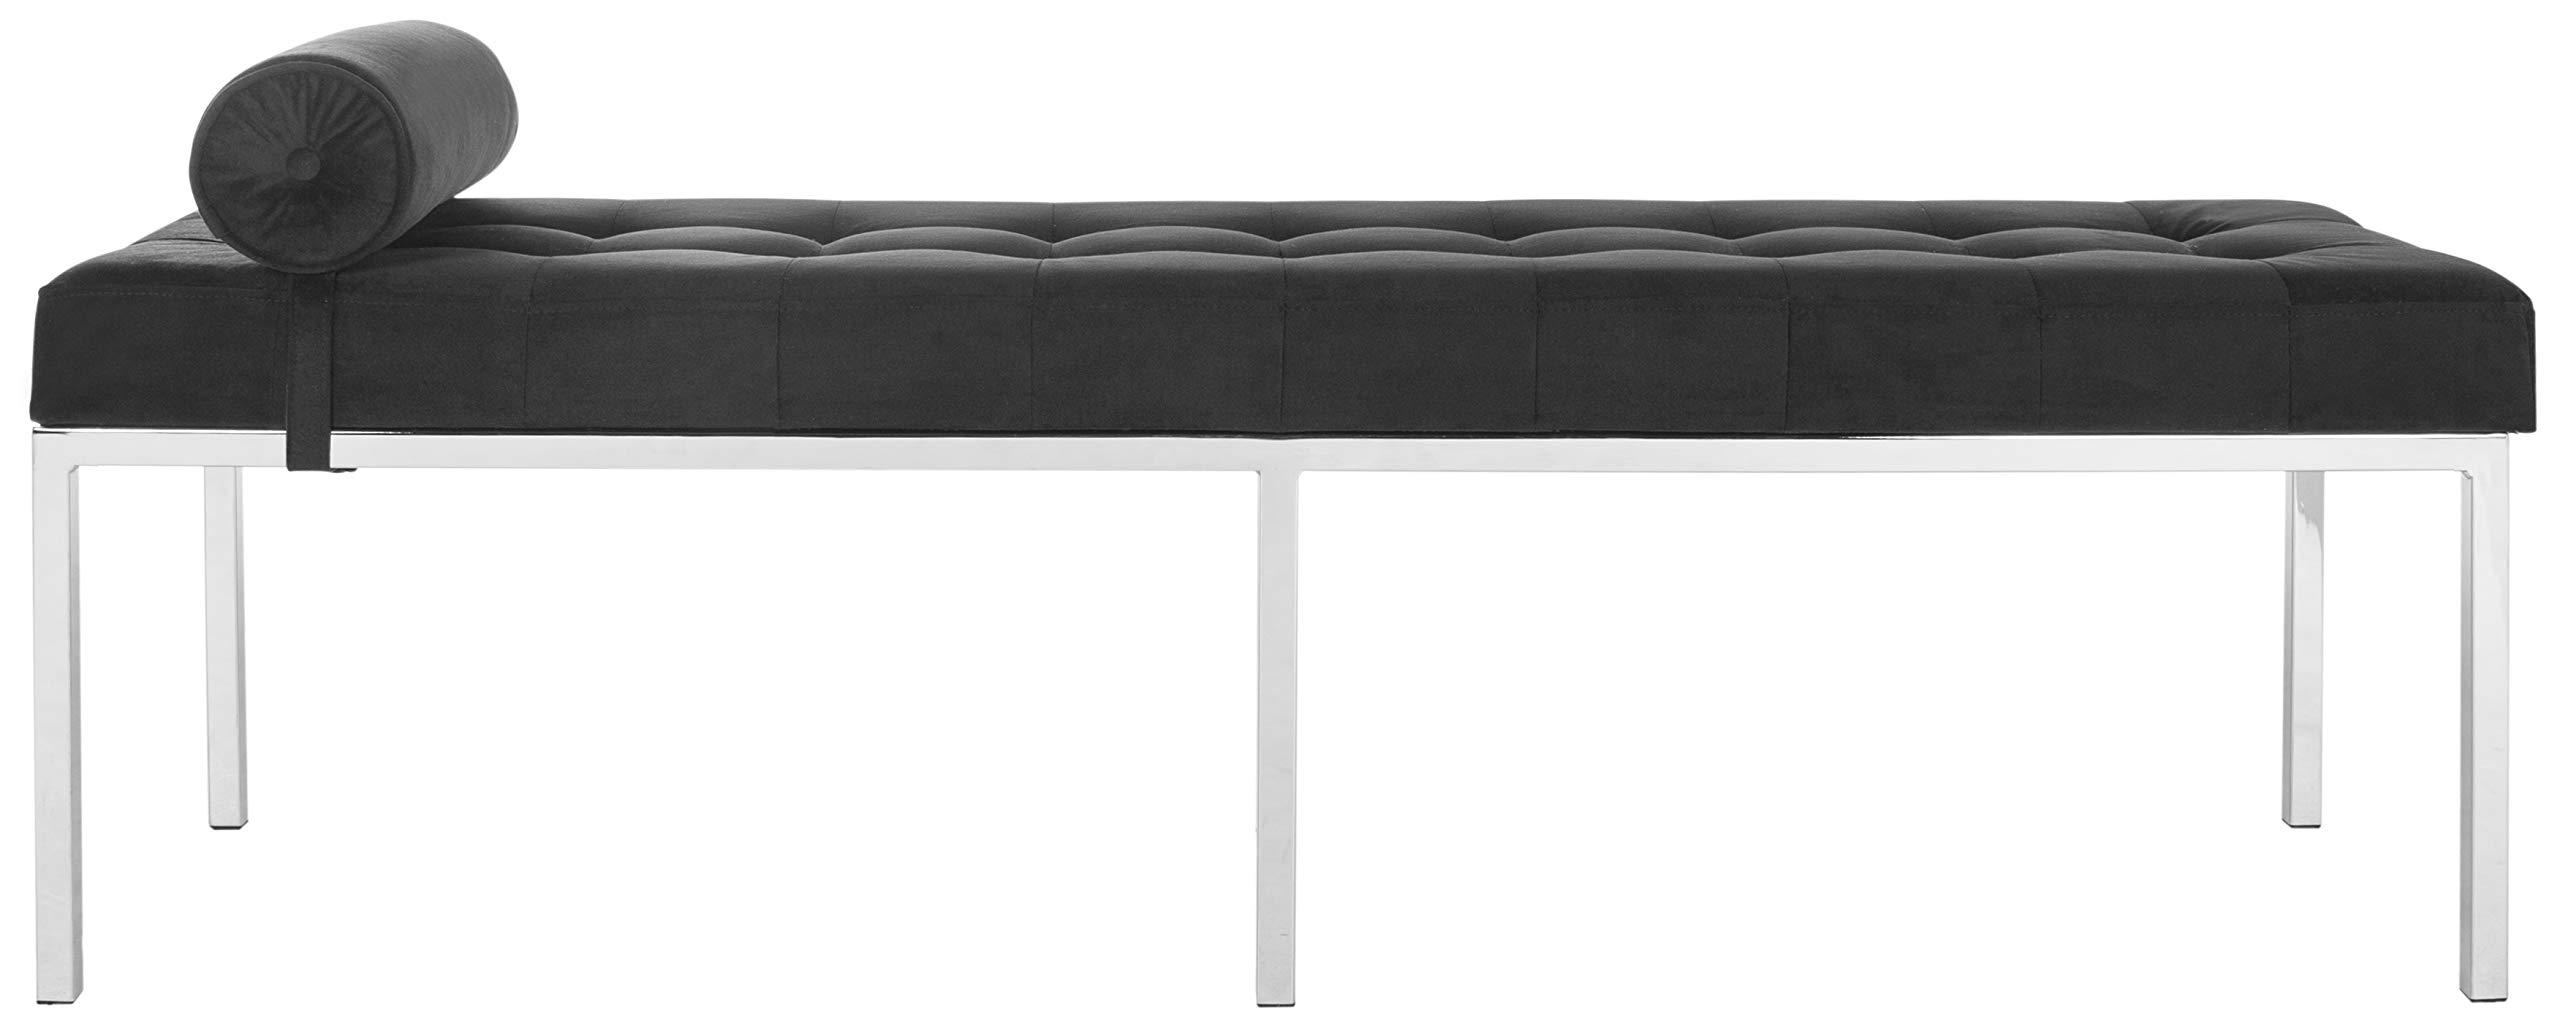 Safavieh FOX6240B Home Collection Xavier Tufted Bench, Black by Safavieh (Image #4)